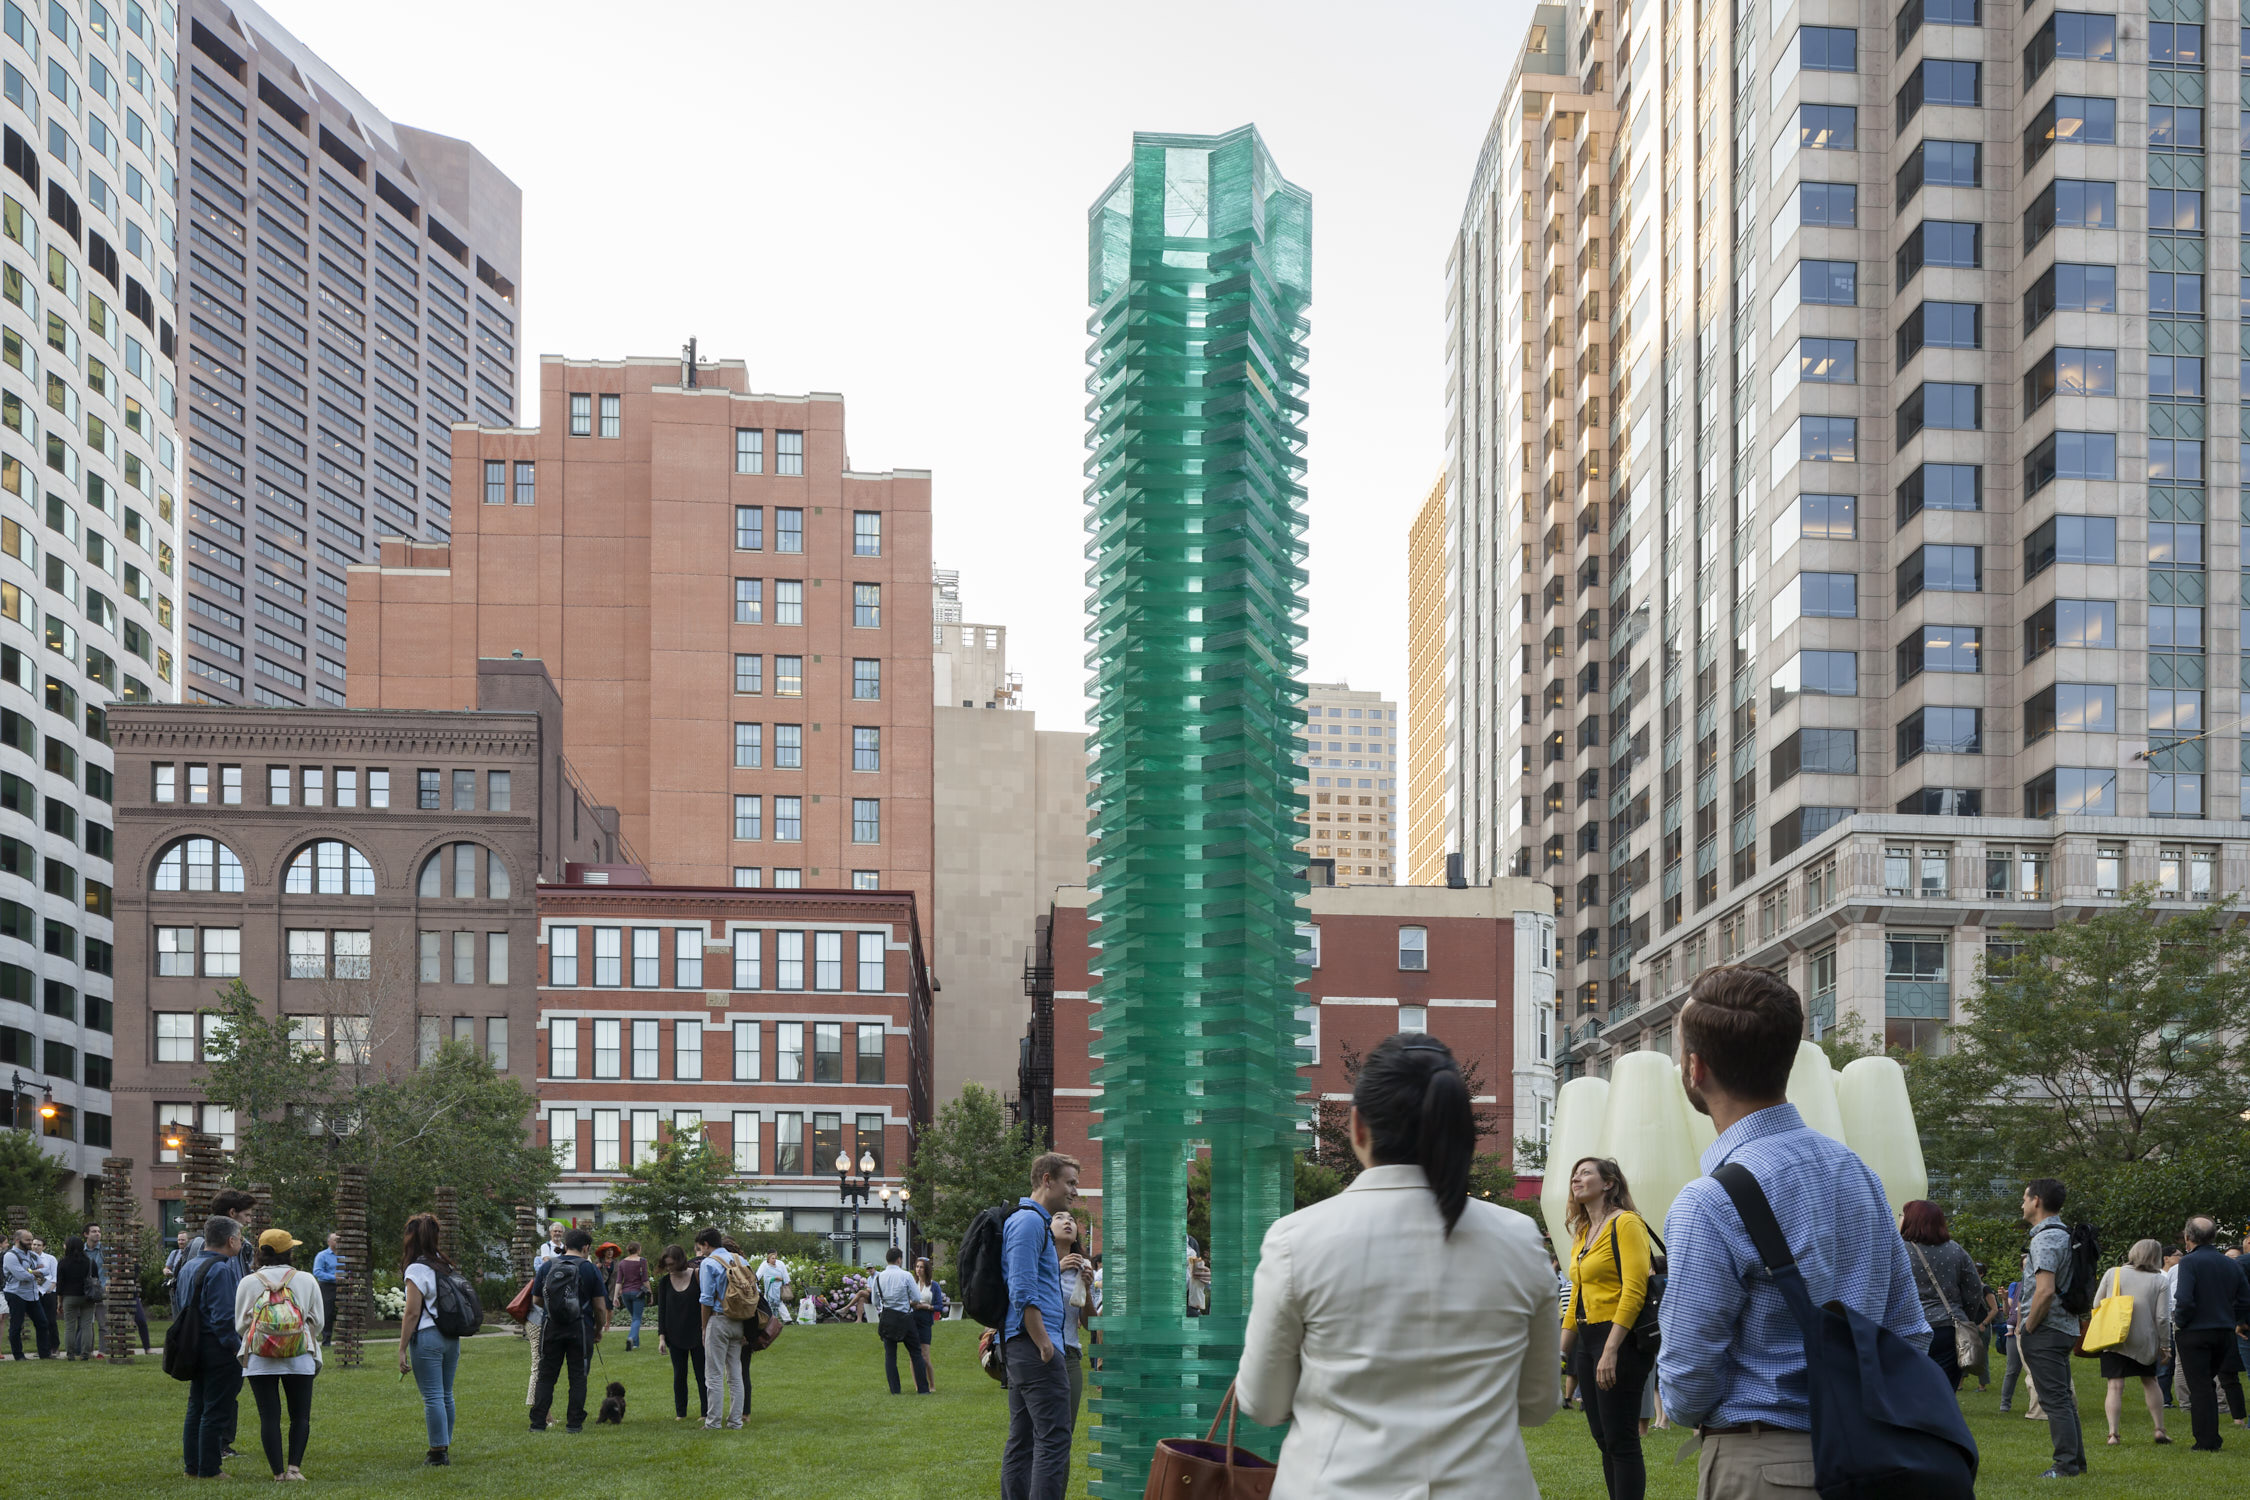 Design Biennial Boston 2015